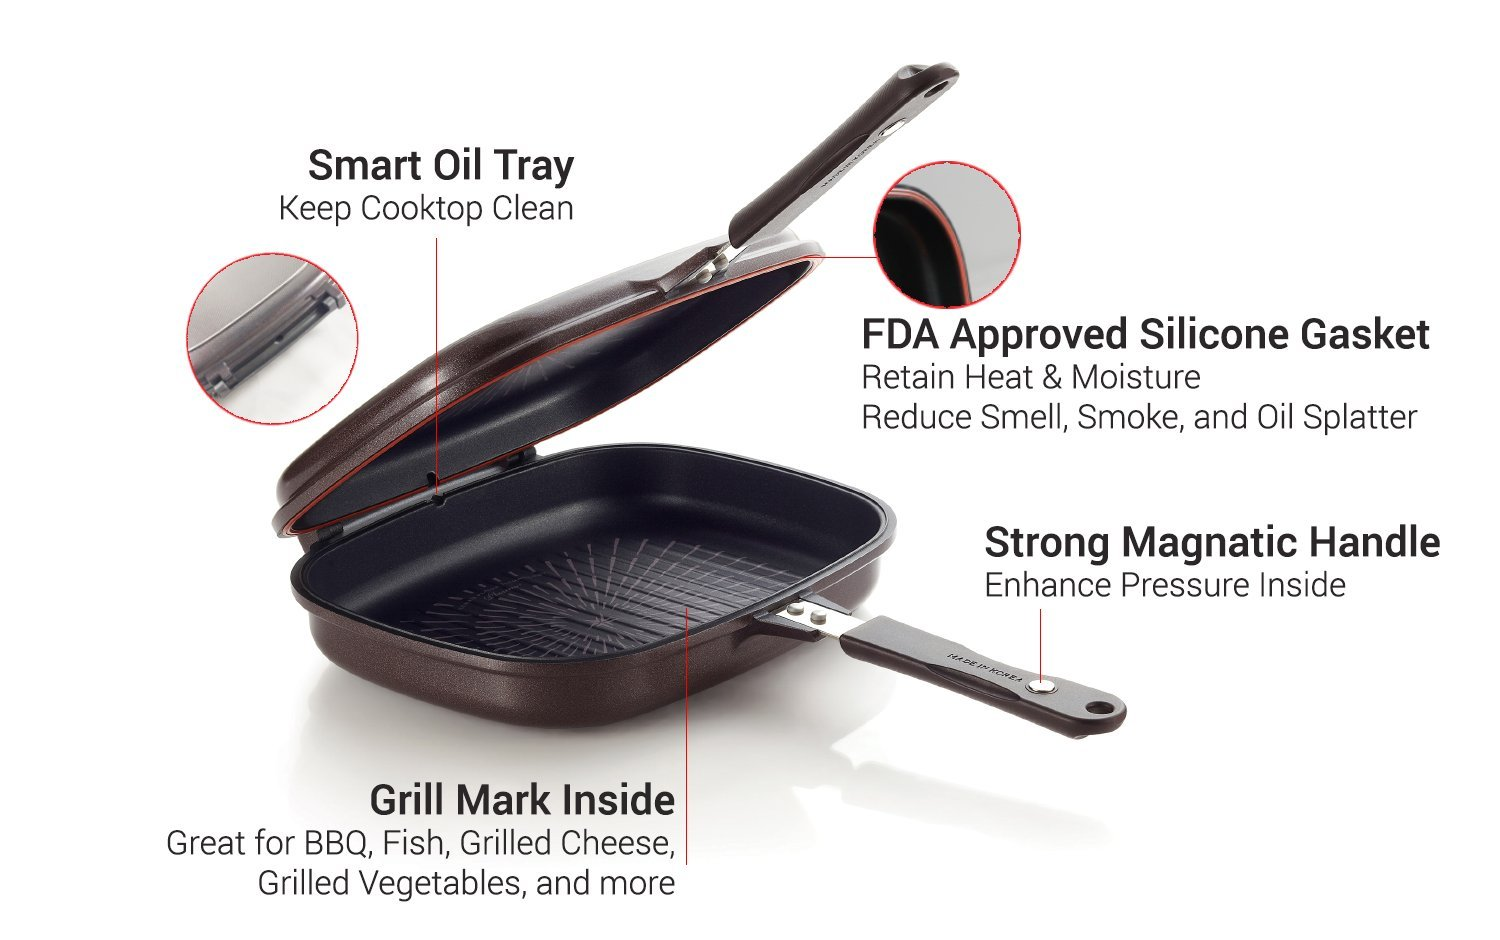 Happycall Titanium Nonstick Double Pan, Omelette Pan, Flip Pan, Square, Dishwasher Safe, PFOA-free, Brown (Jumbo Grill) by Happycall (Image #2)